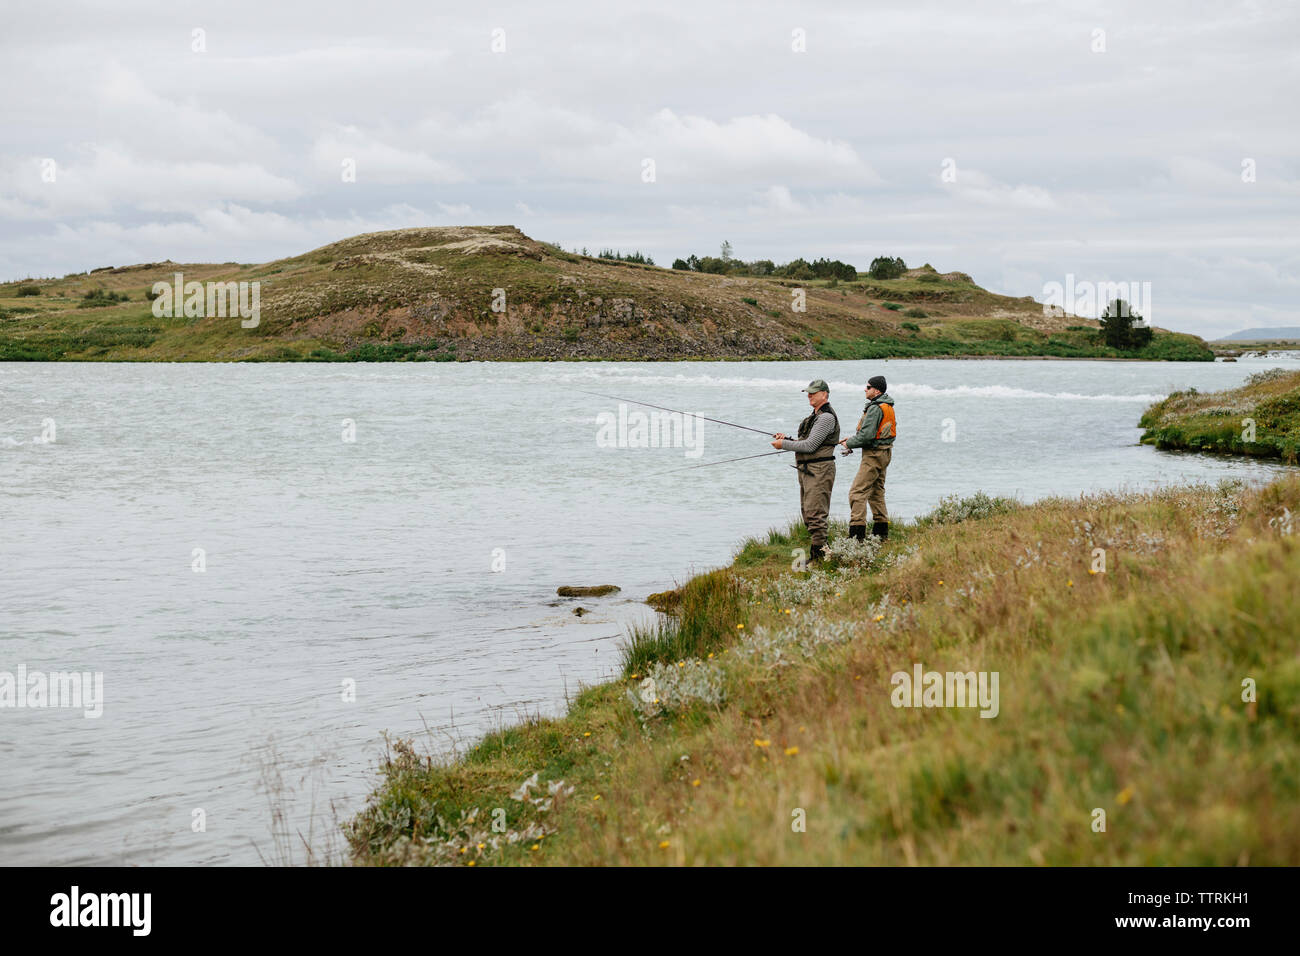 Friends fishing in lake while standing on grassy field against cloudy sky Stock Photo